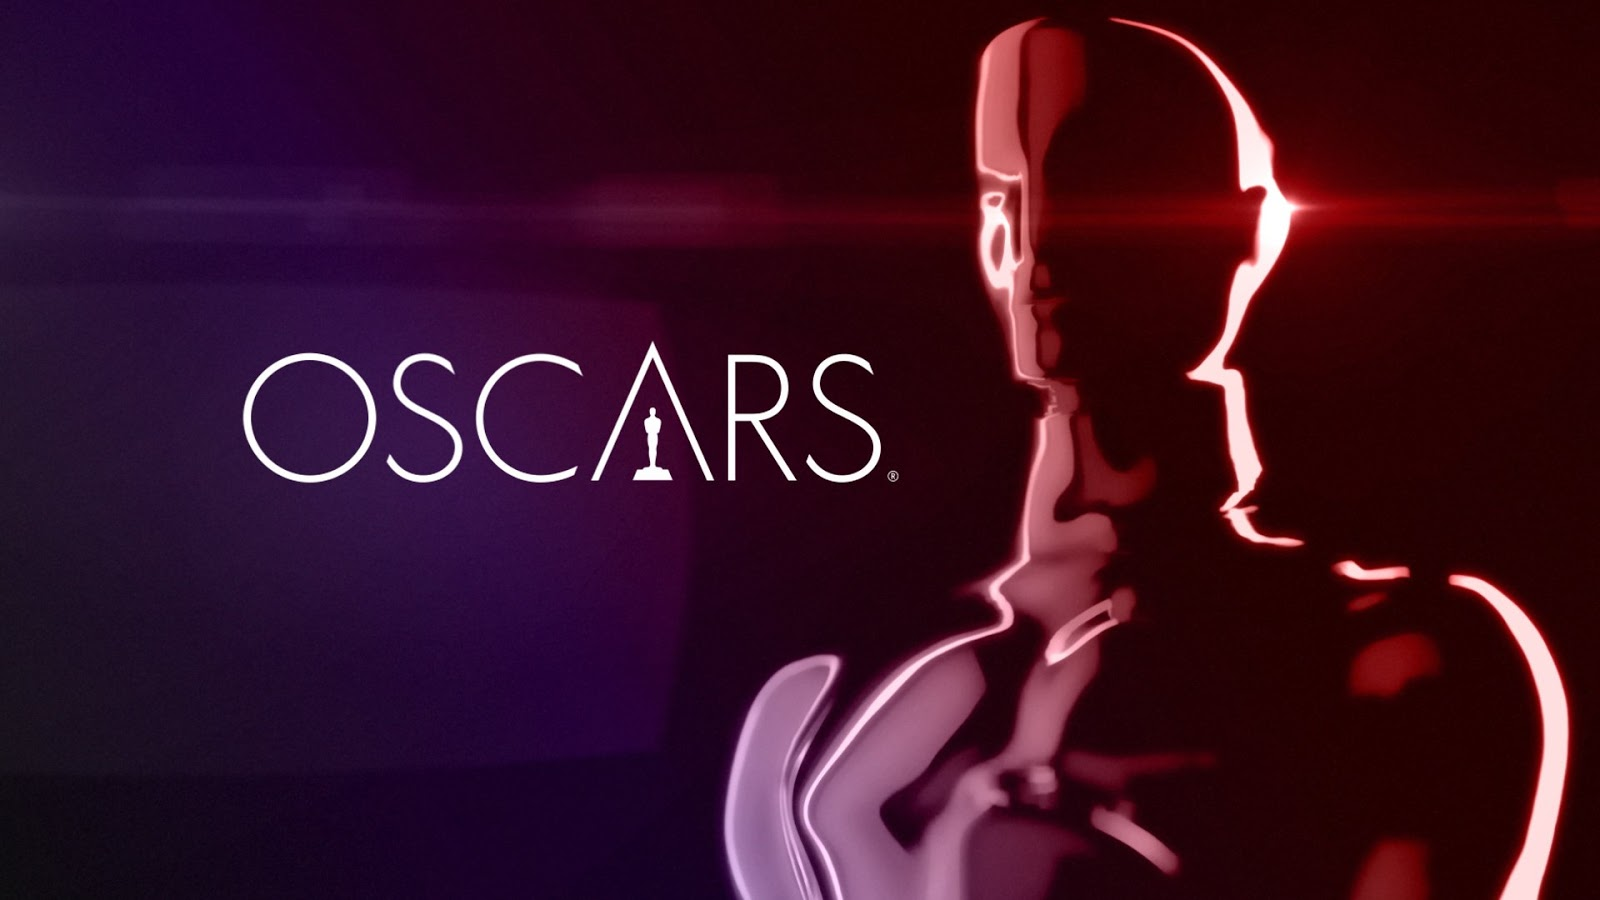 How to watch the Oscars 2019 live stream online